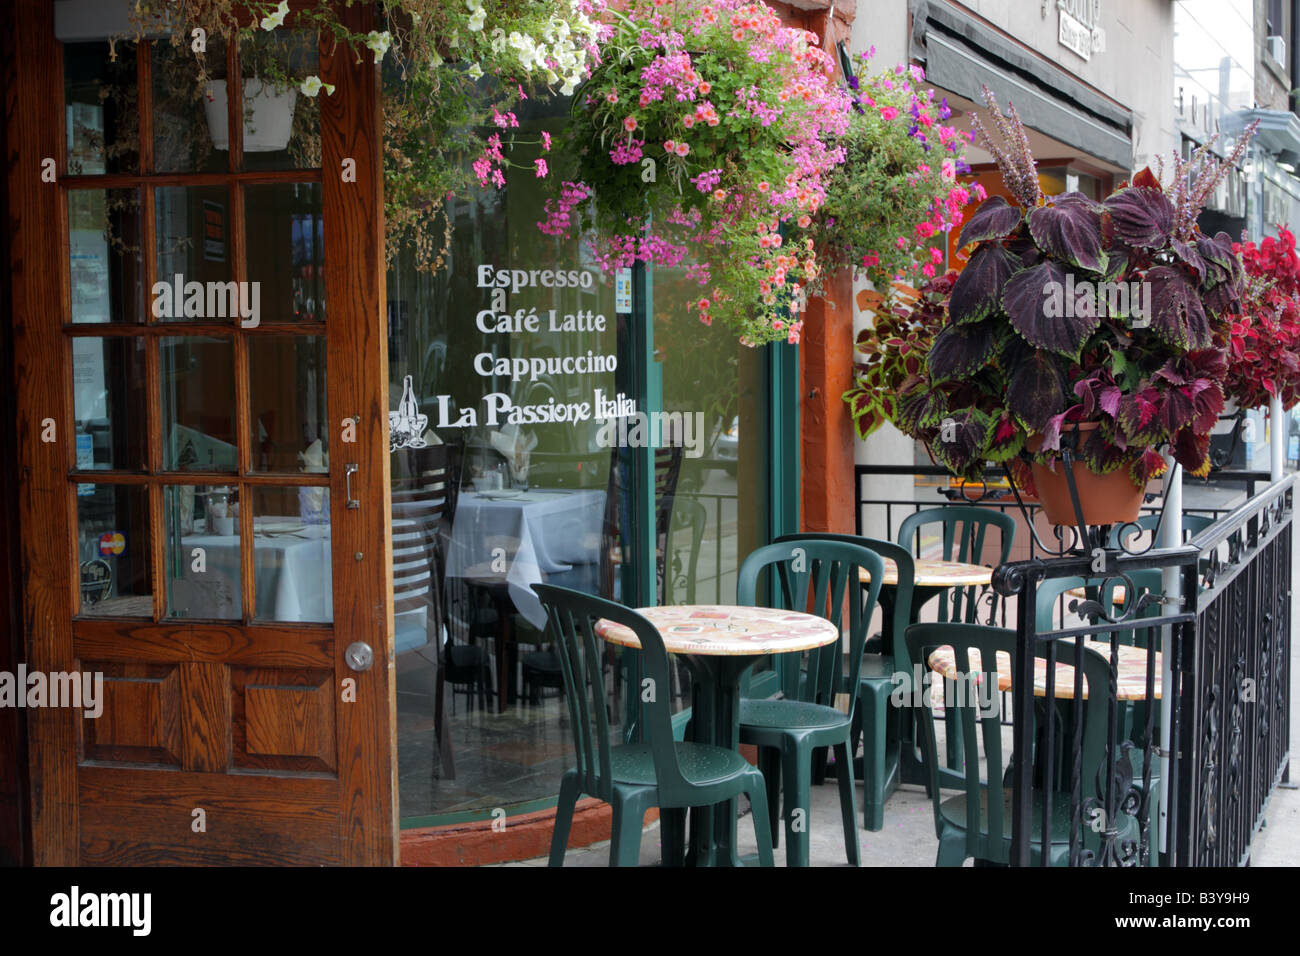 Cafe Restaurant With Outdoor Patio On Yonge Street In Toronto Ontario Stock Photo Alamy